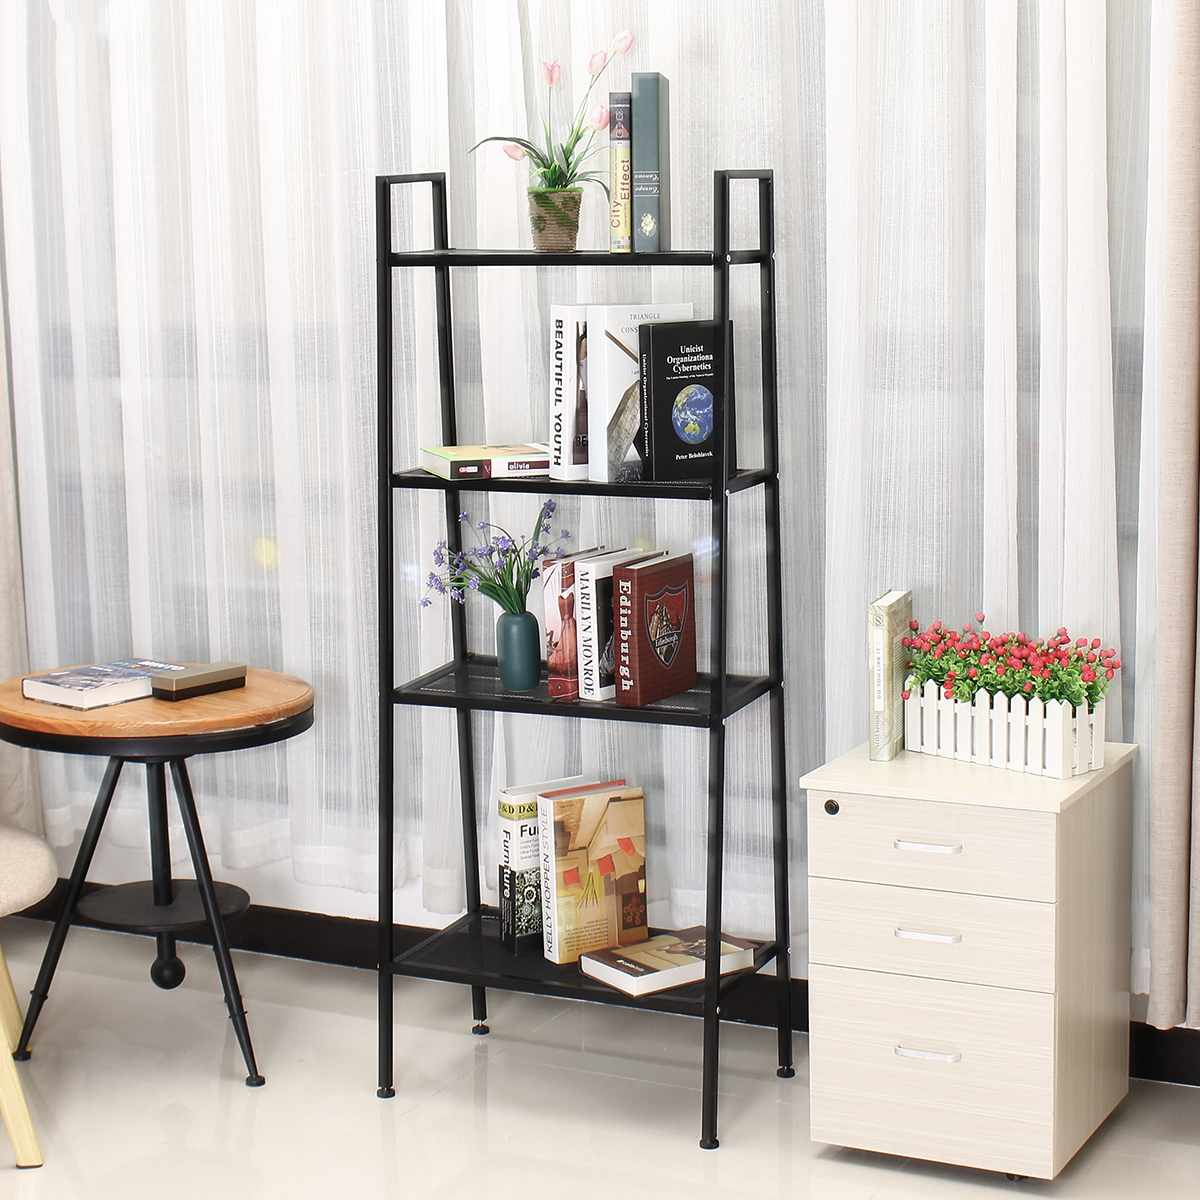 4 Tiers Wall Leaning Ladder Shelf Bookcase Bookshelf Storage